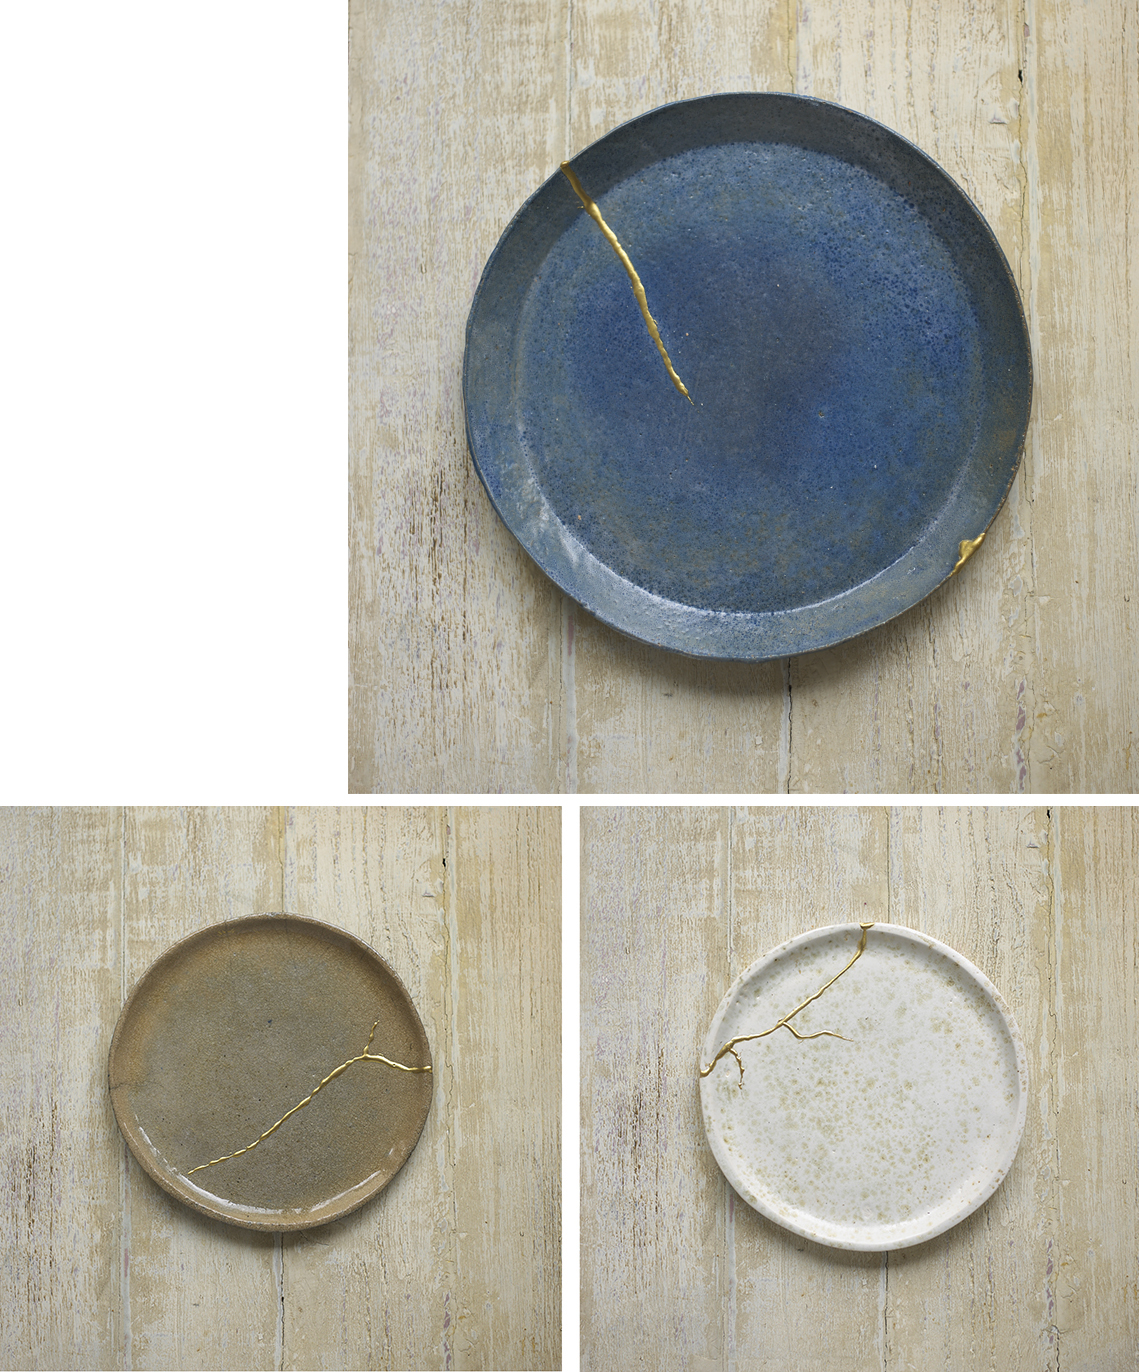 Kintsugi 'Golden Joinery'  The Japanese art of repairing broken pottery by mending the cracks or breakage with lacquer ( or in my case epoxy resin ) which is mixed with powdered gold or silver . it allows the damage to be seen as a valuable part of the history of the piece.